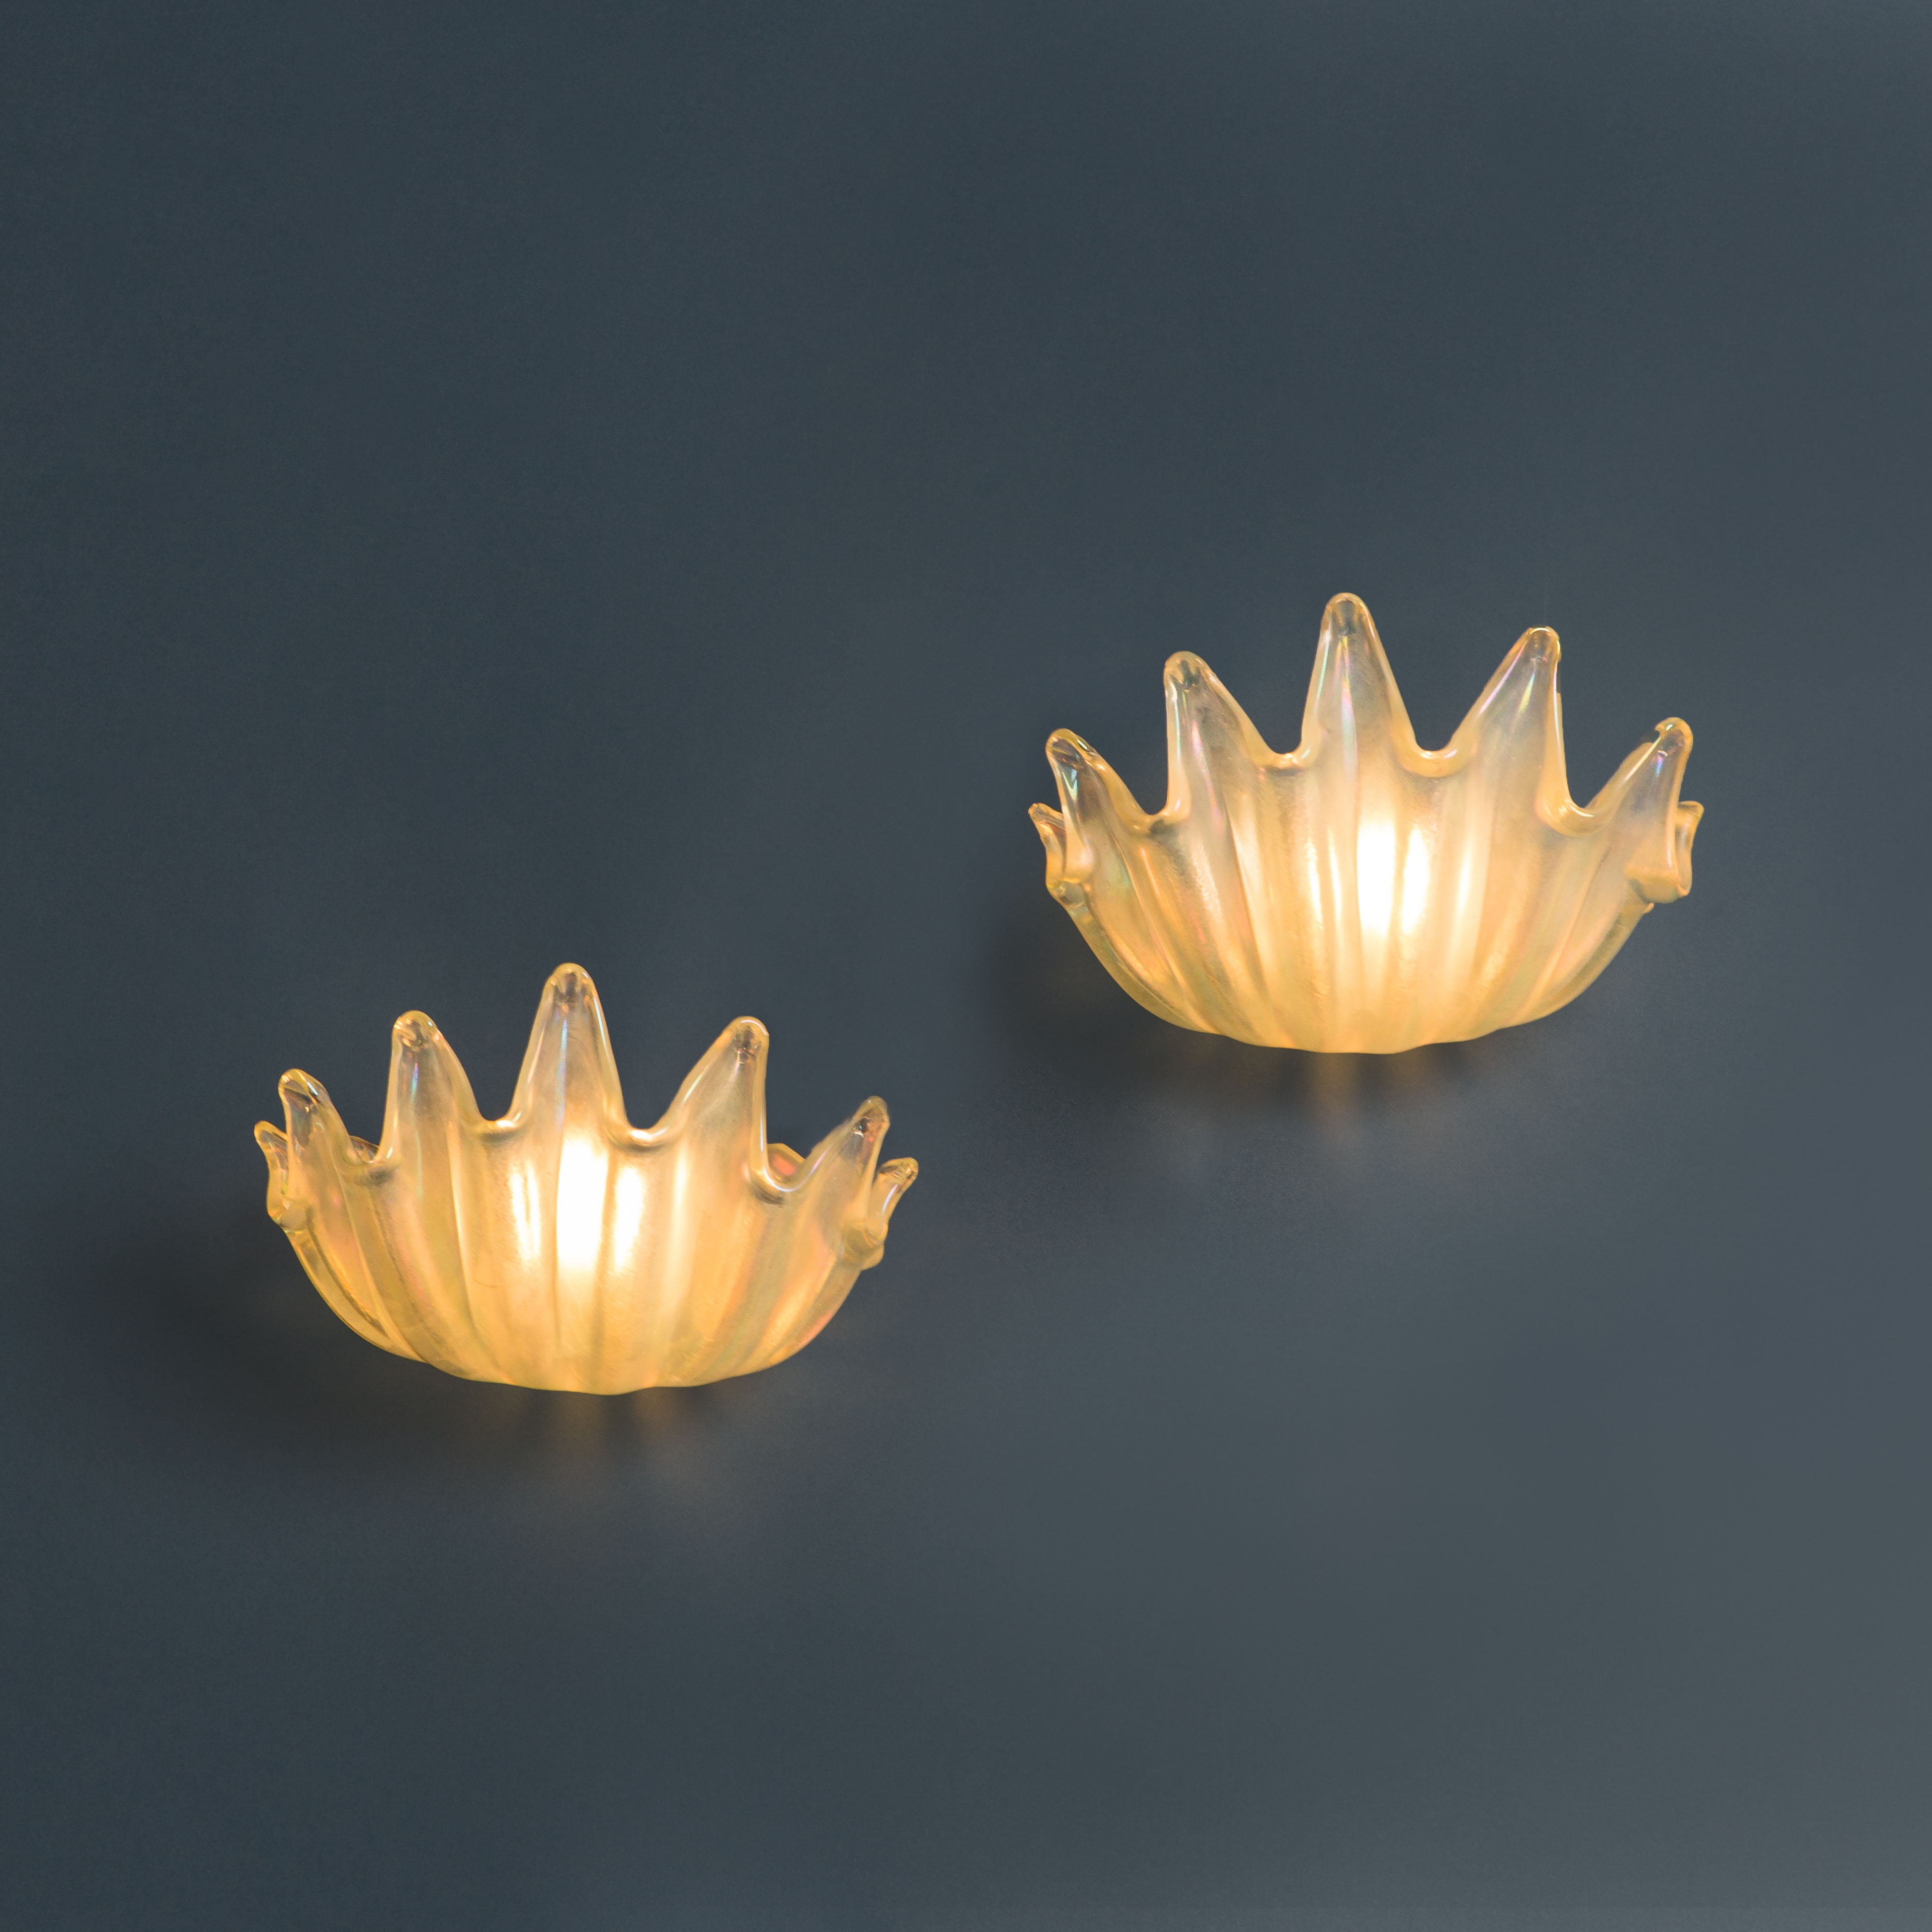 Pair of Rare Sconces by Ercole Barovier for Barovier & Toso | soyun k.